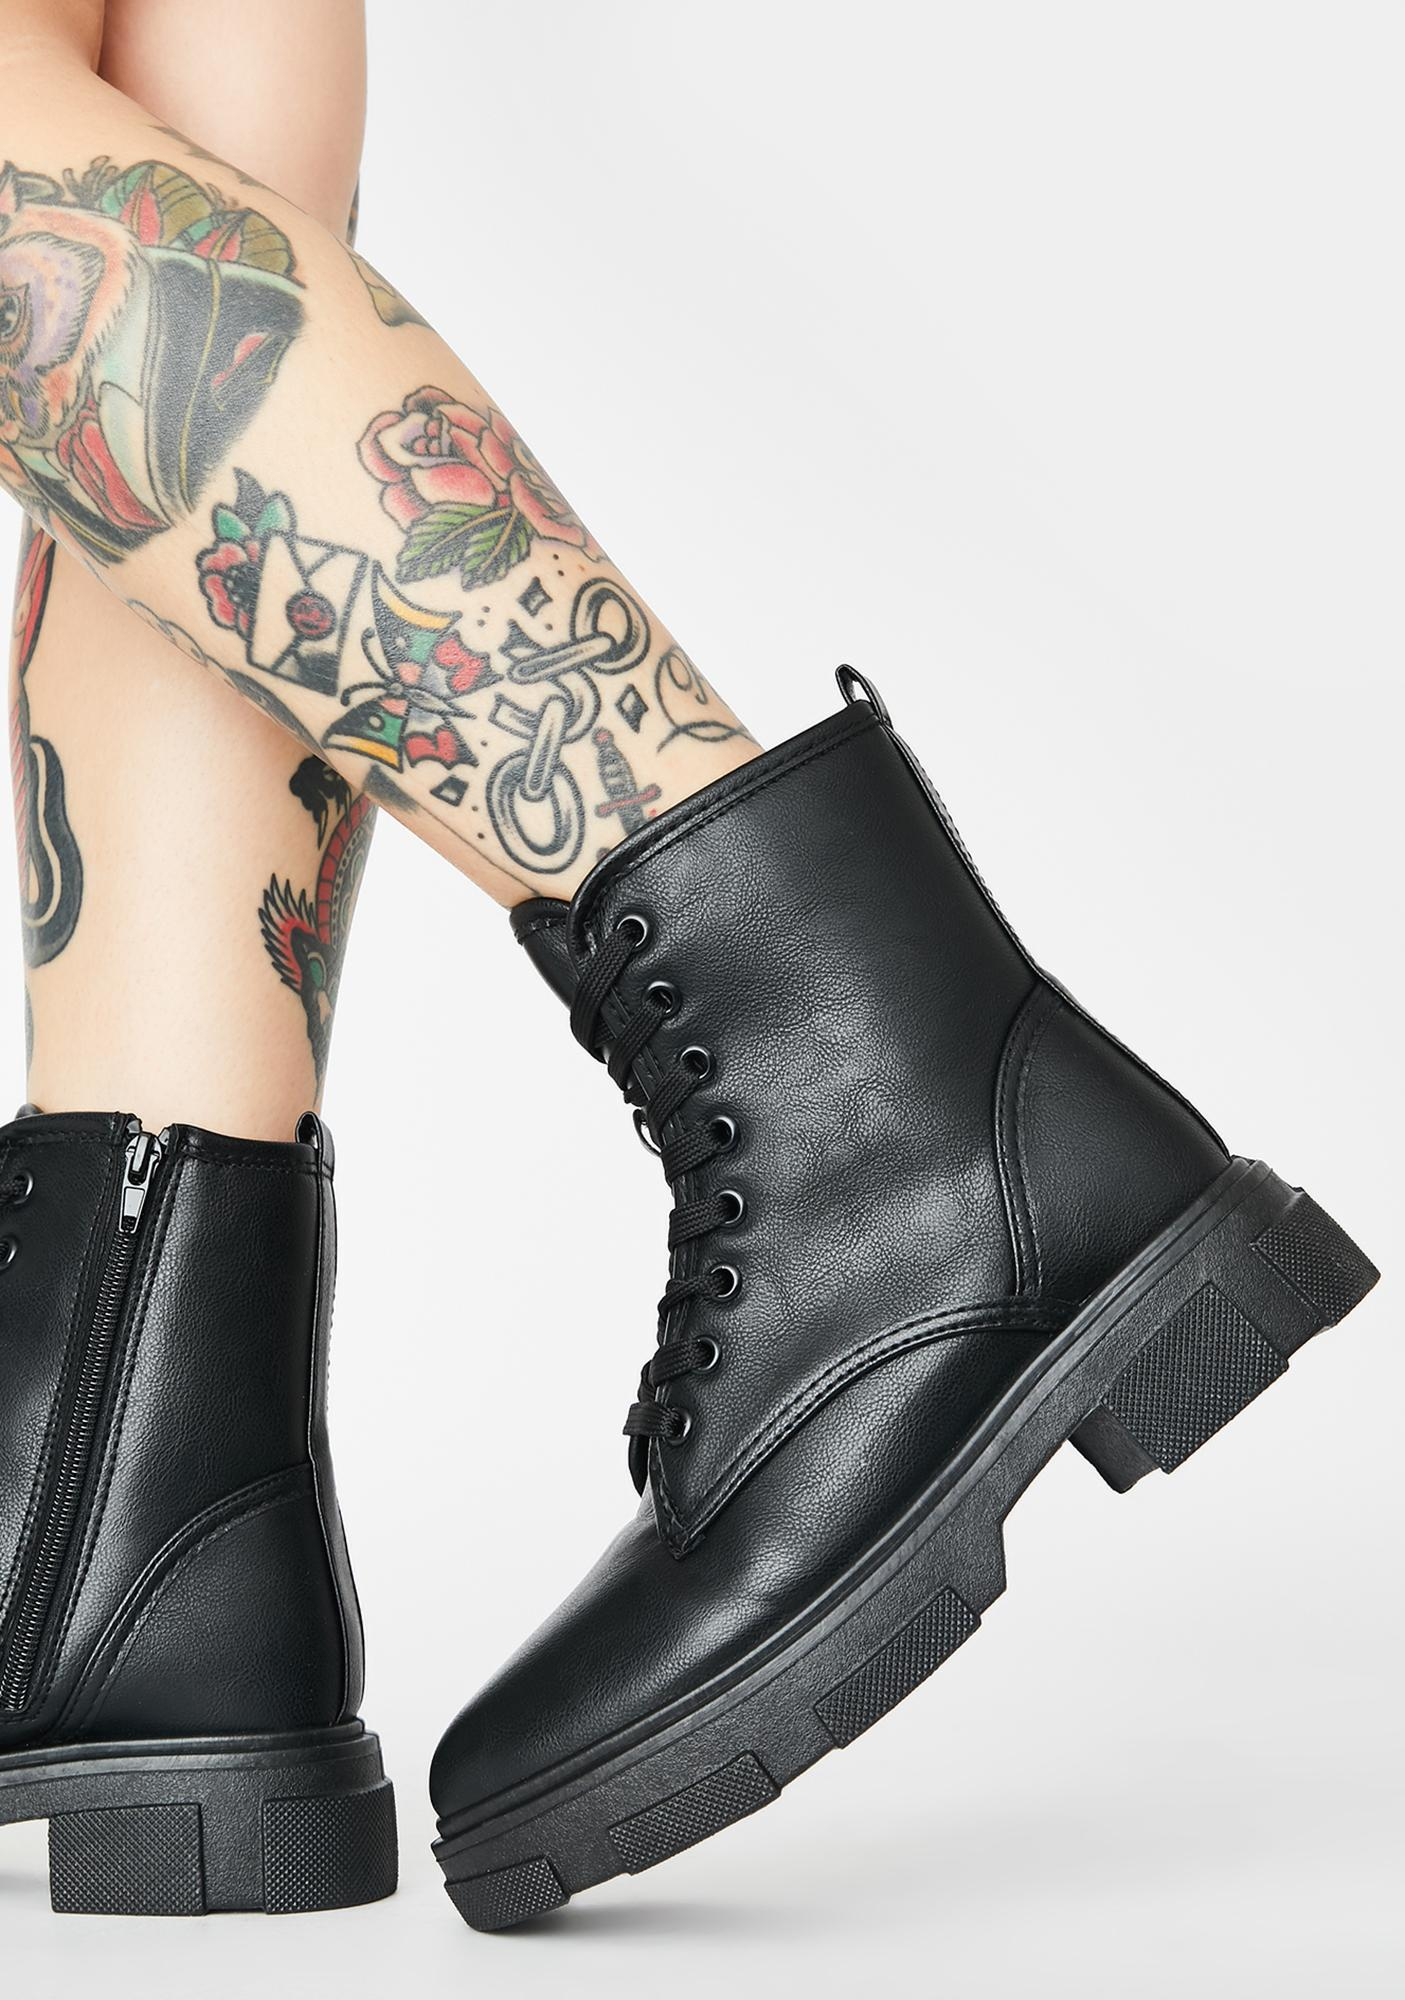 The Dopeness Combat Boots